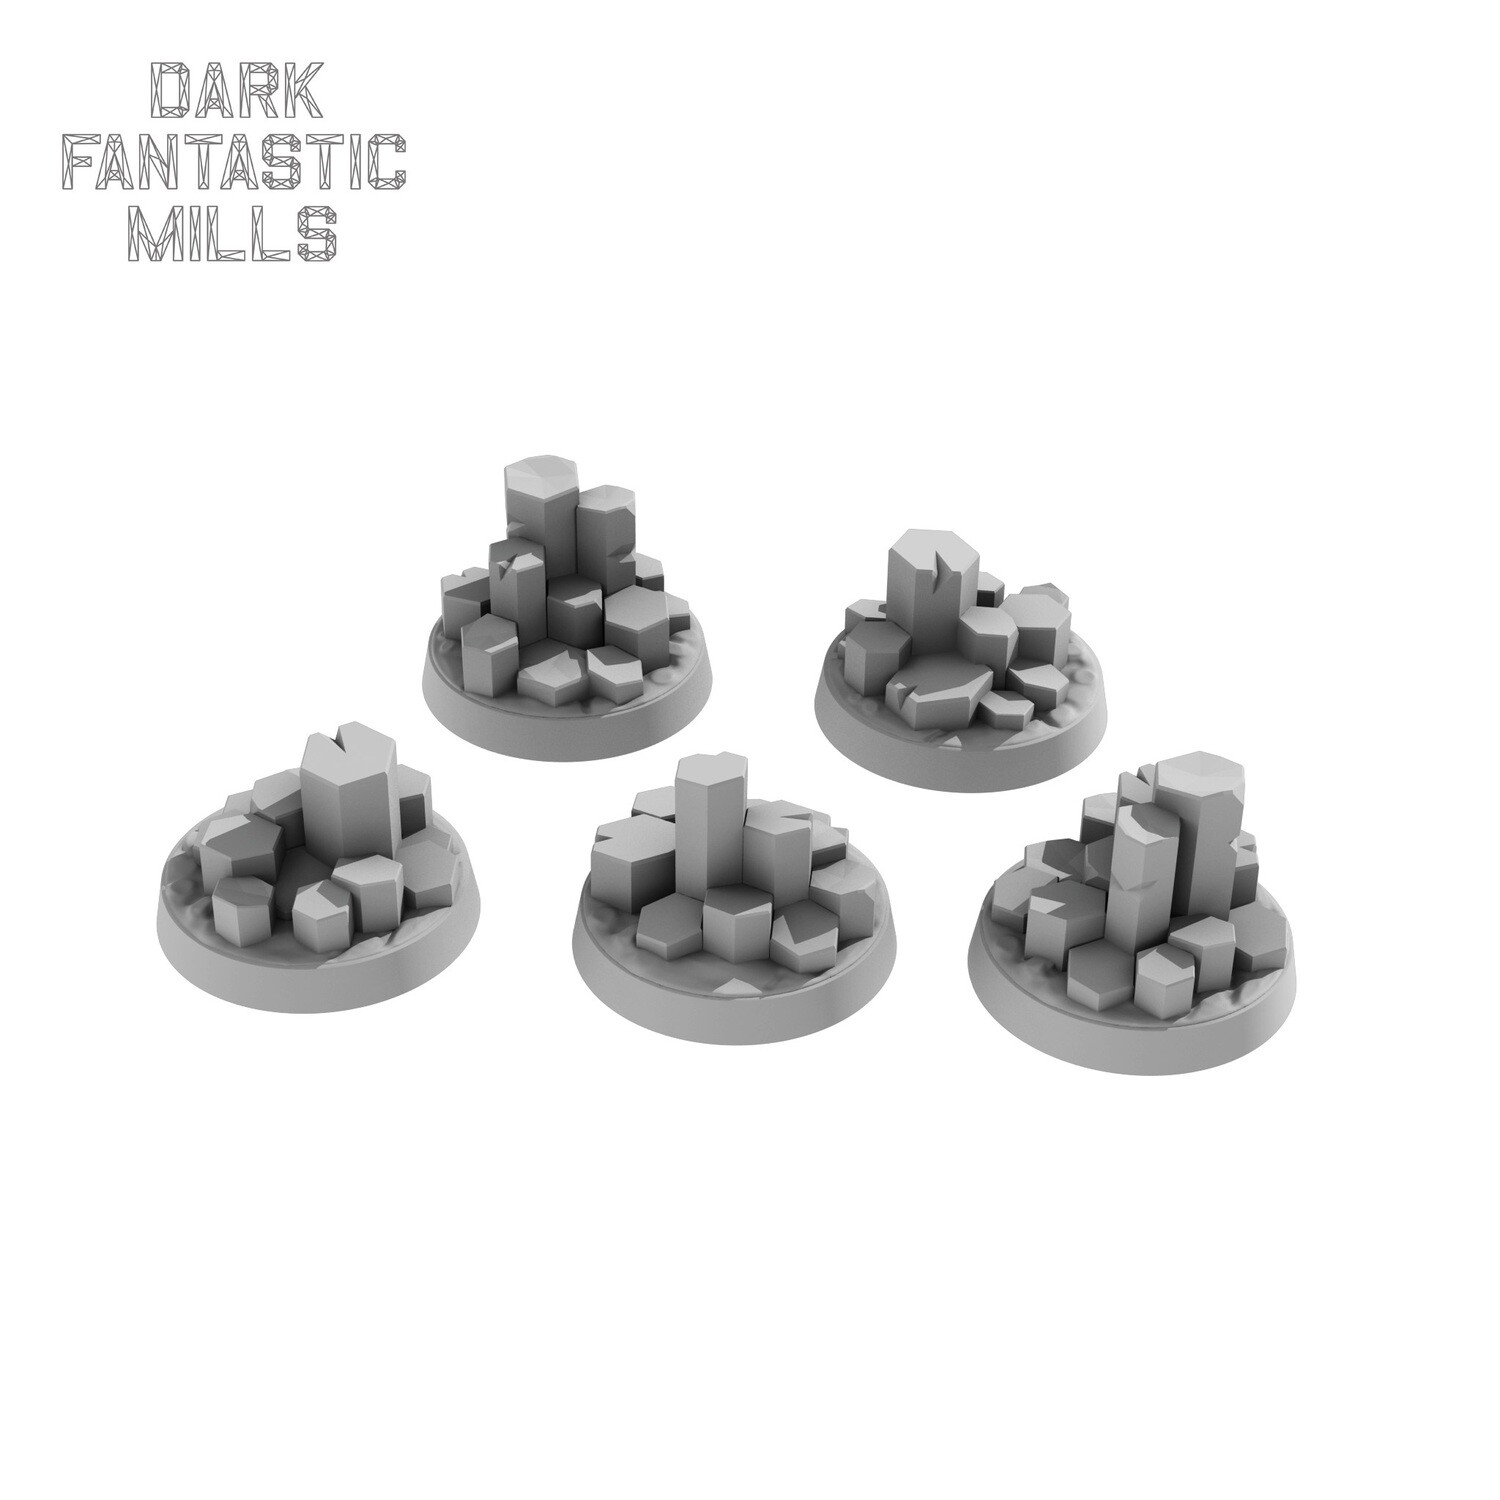 25mm Wyvern Waste Bases,  Tall